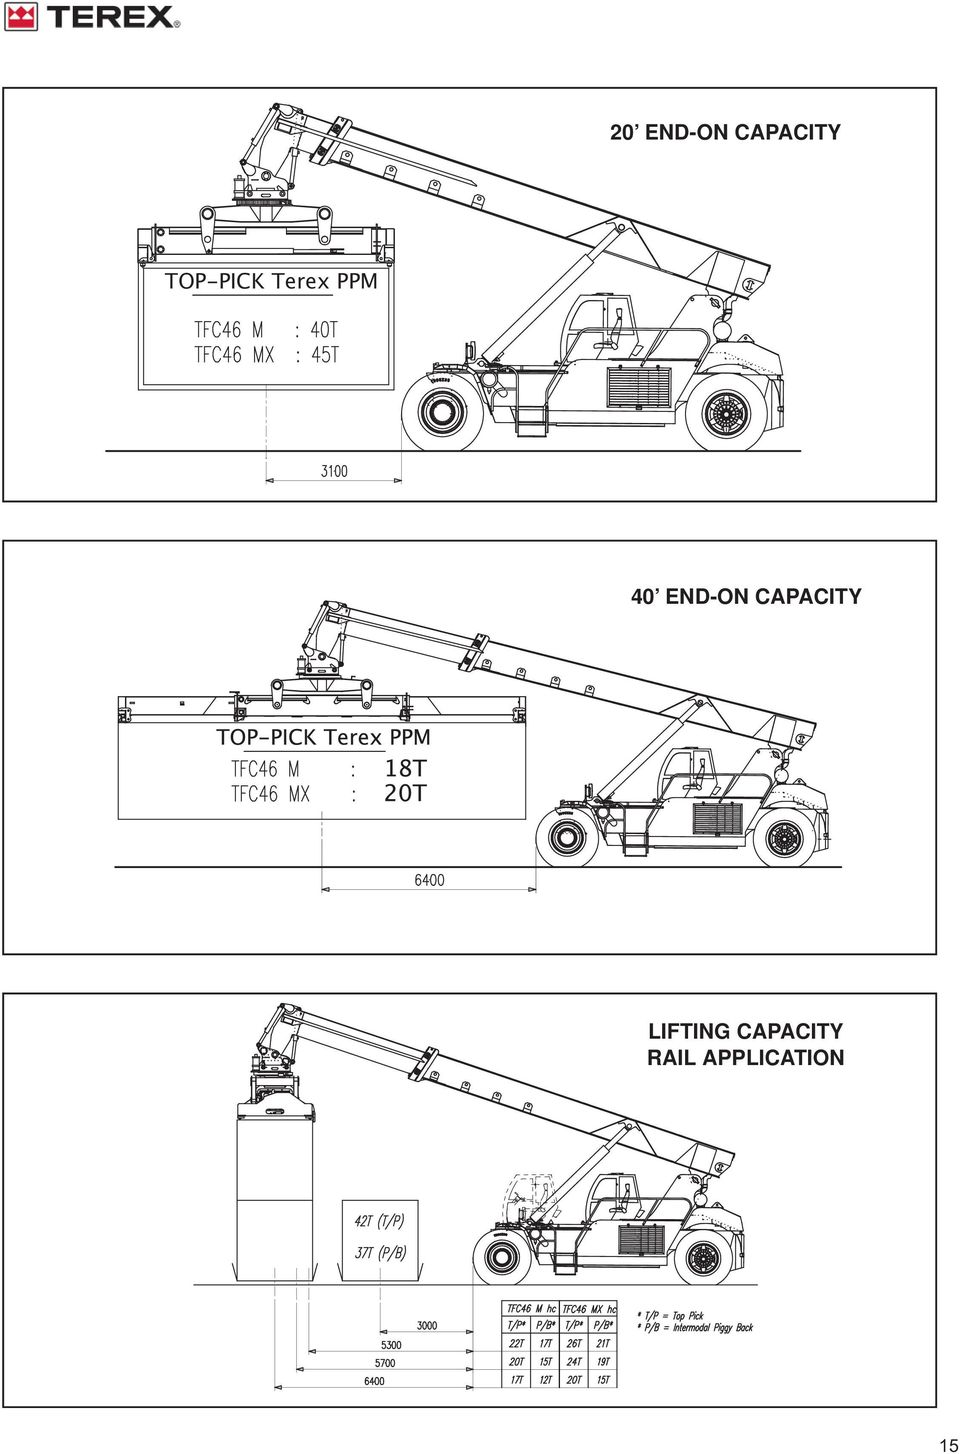 END-ON CAPACITY LIFTING